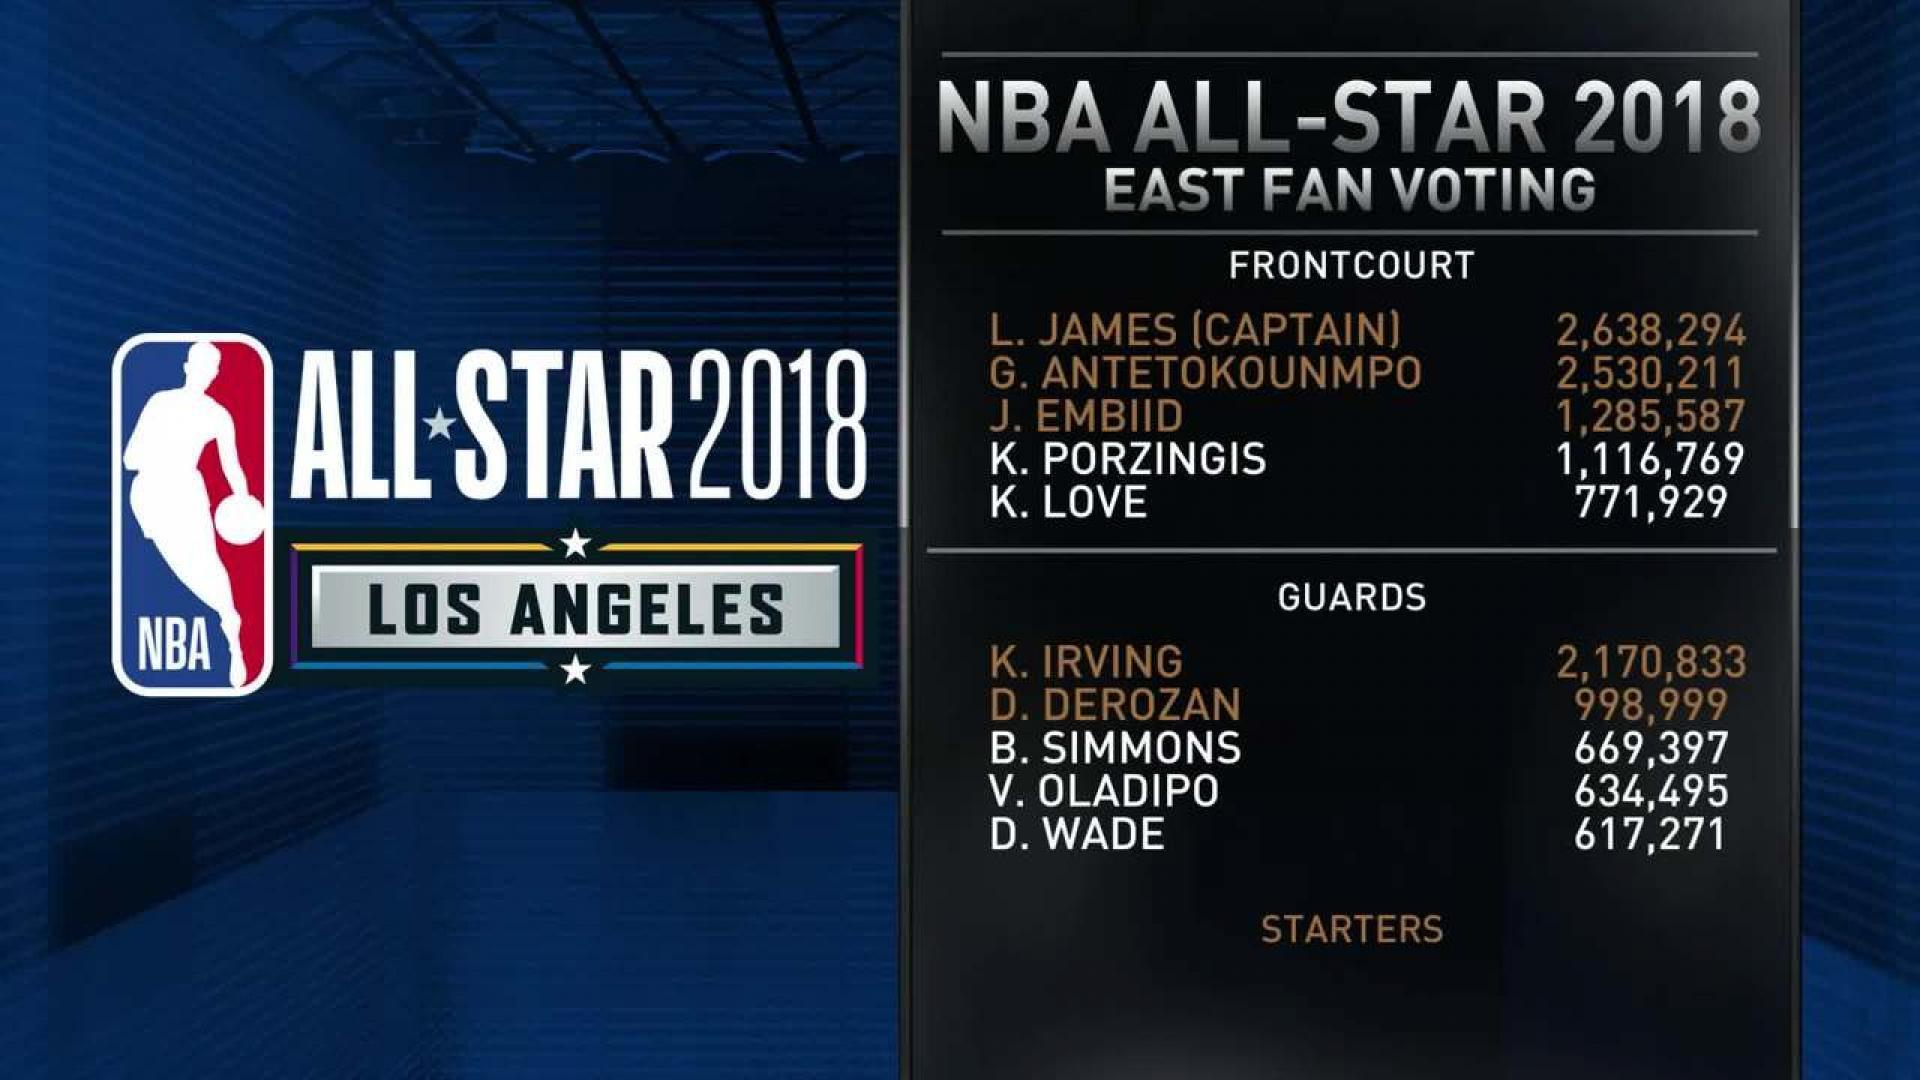 Oladipo Gets Reserve Role For 2018 NBA All-Star Game